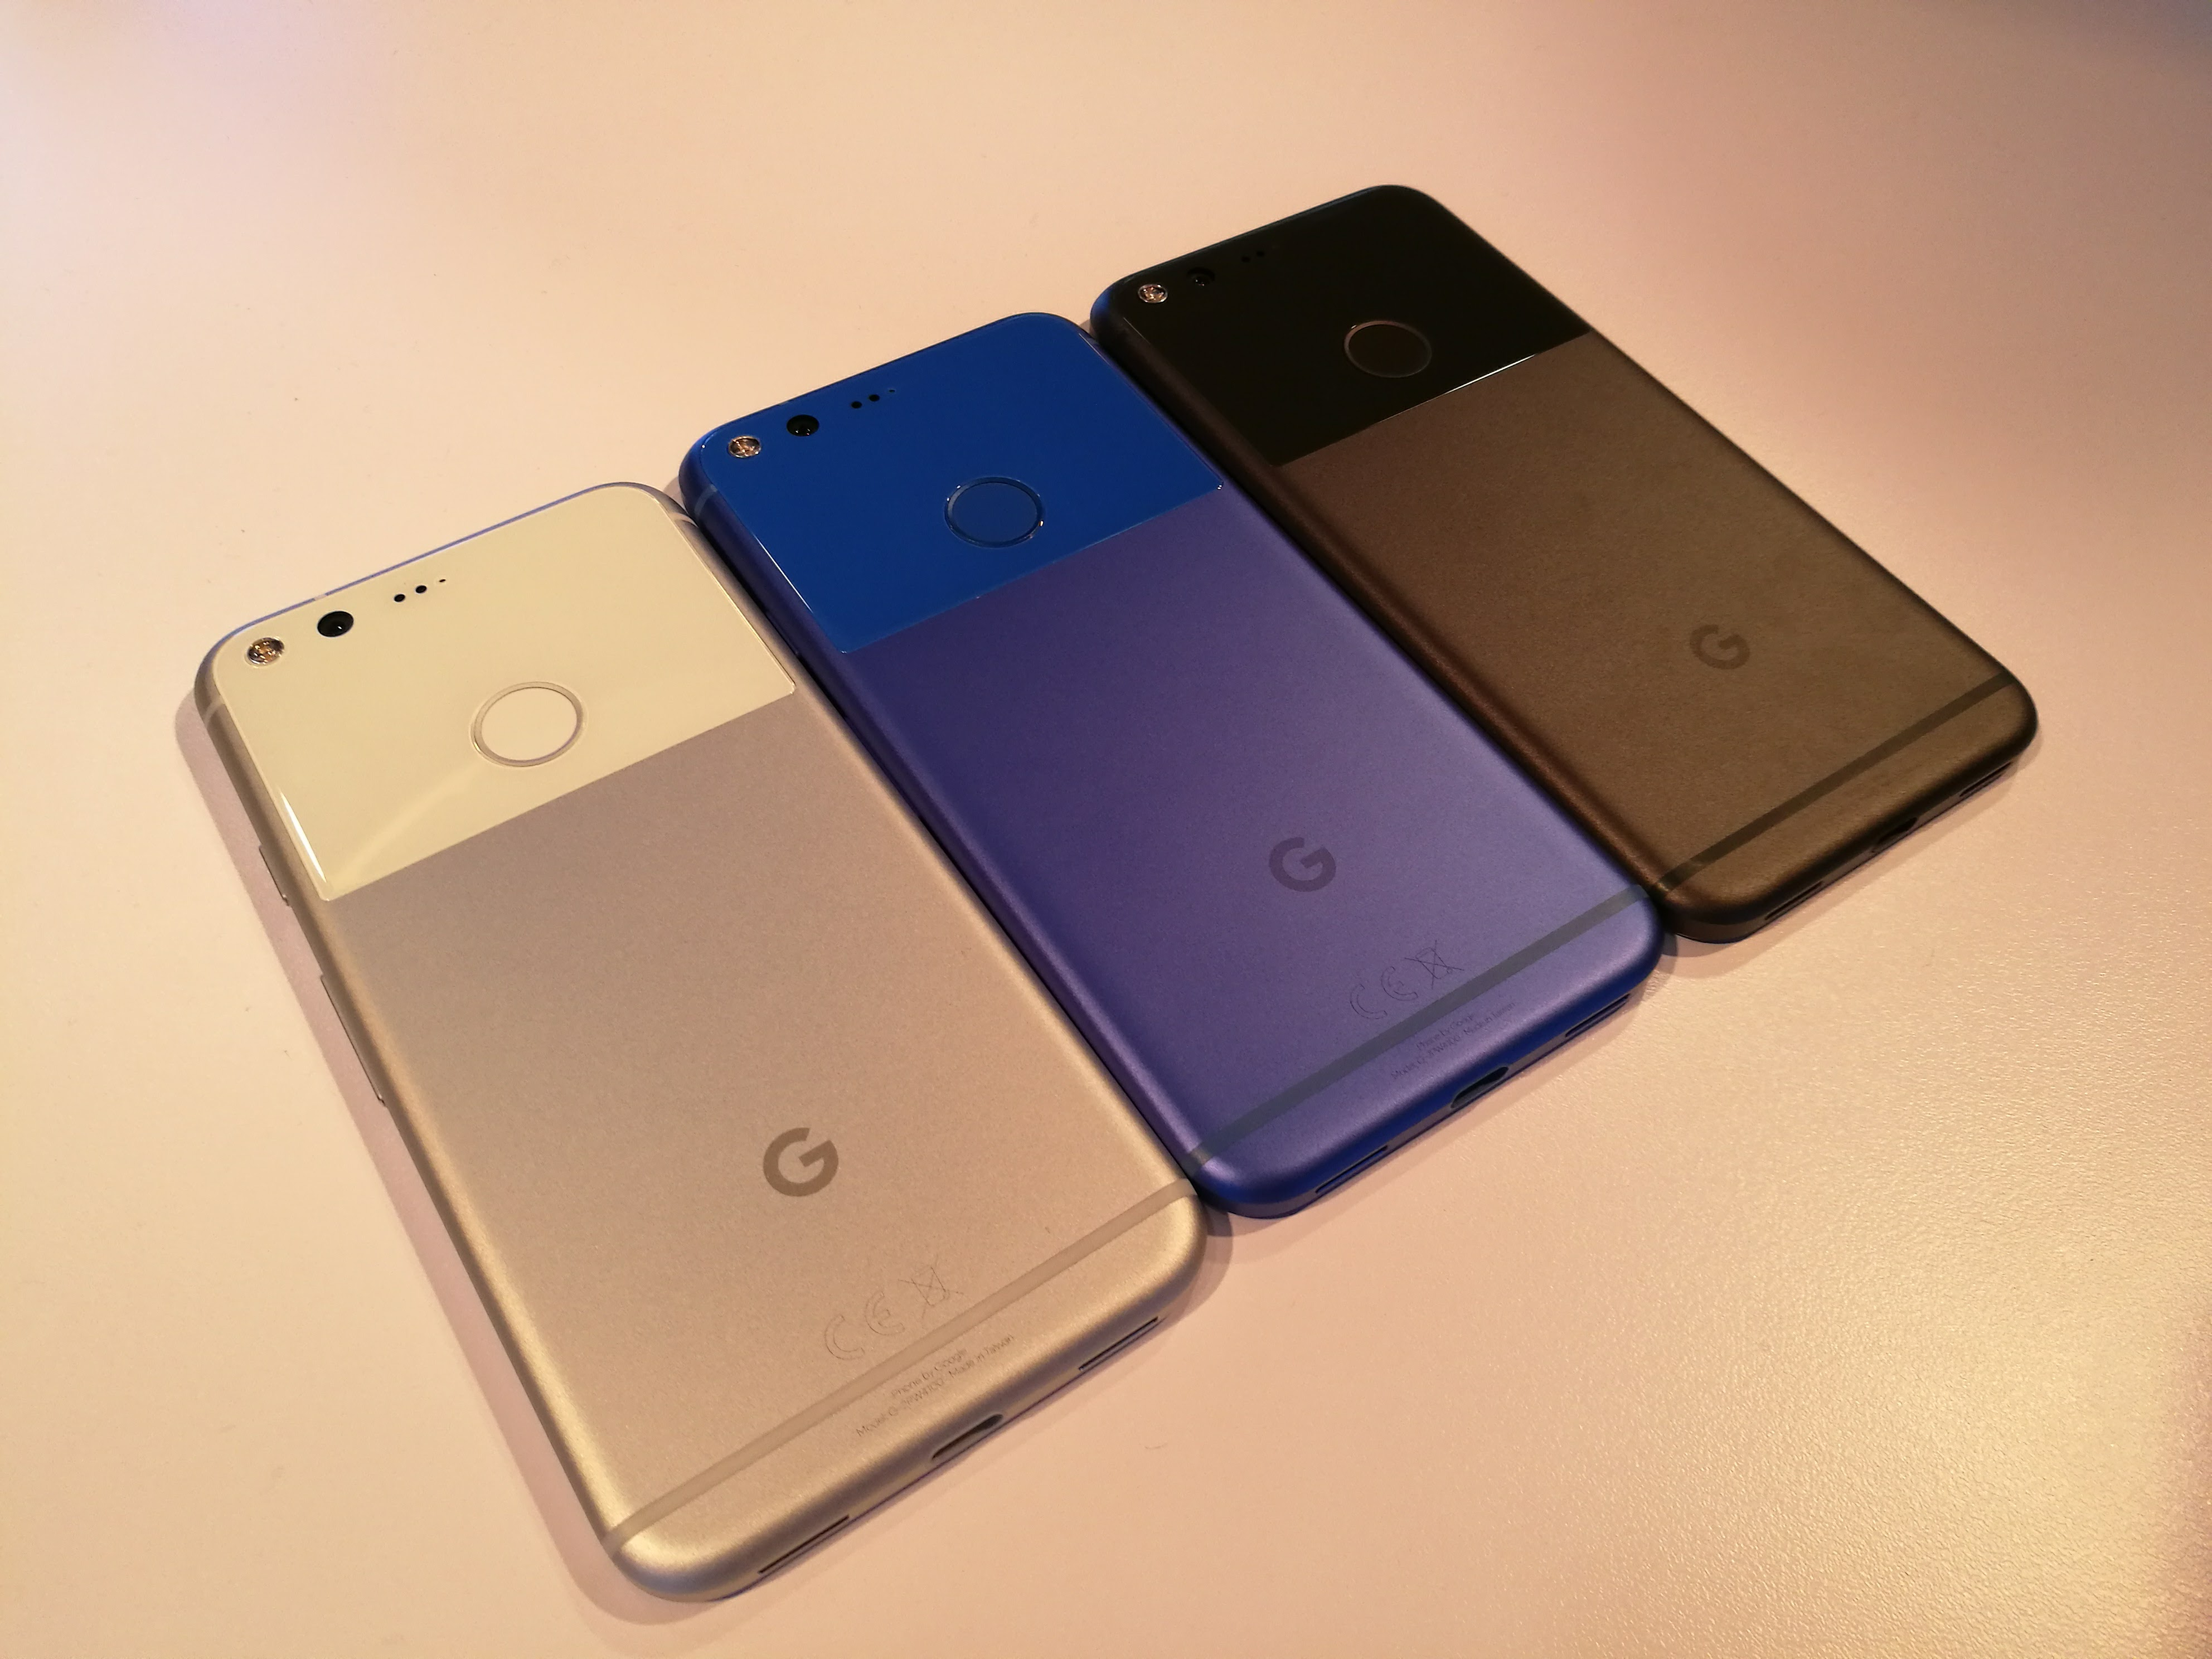 Google Pixel in Very Silver, Quite Black, and Really Blue.